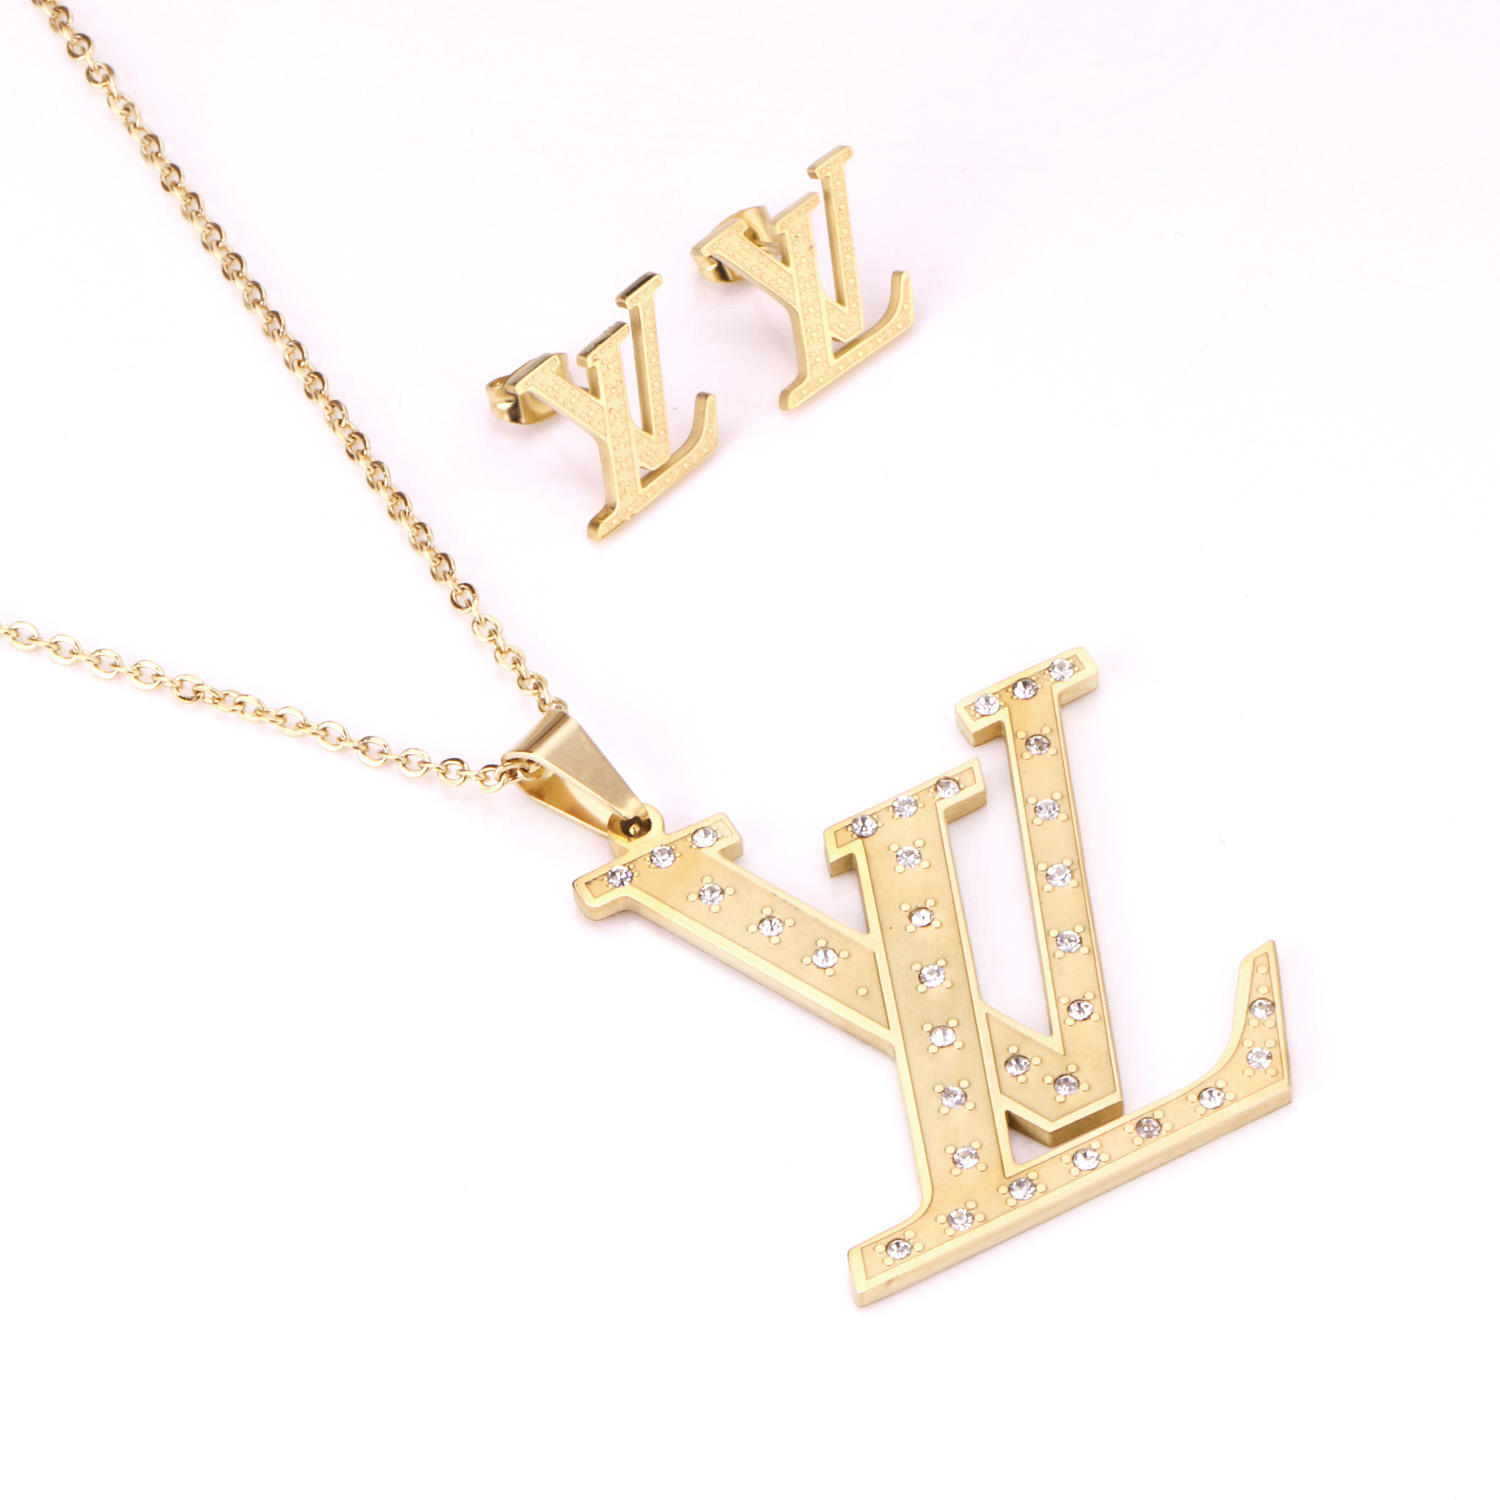 High Quality Cheap Brand Dubai Gold Plated Stainless Steel Pendant Necklace Earrings Jewelry Set For Women